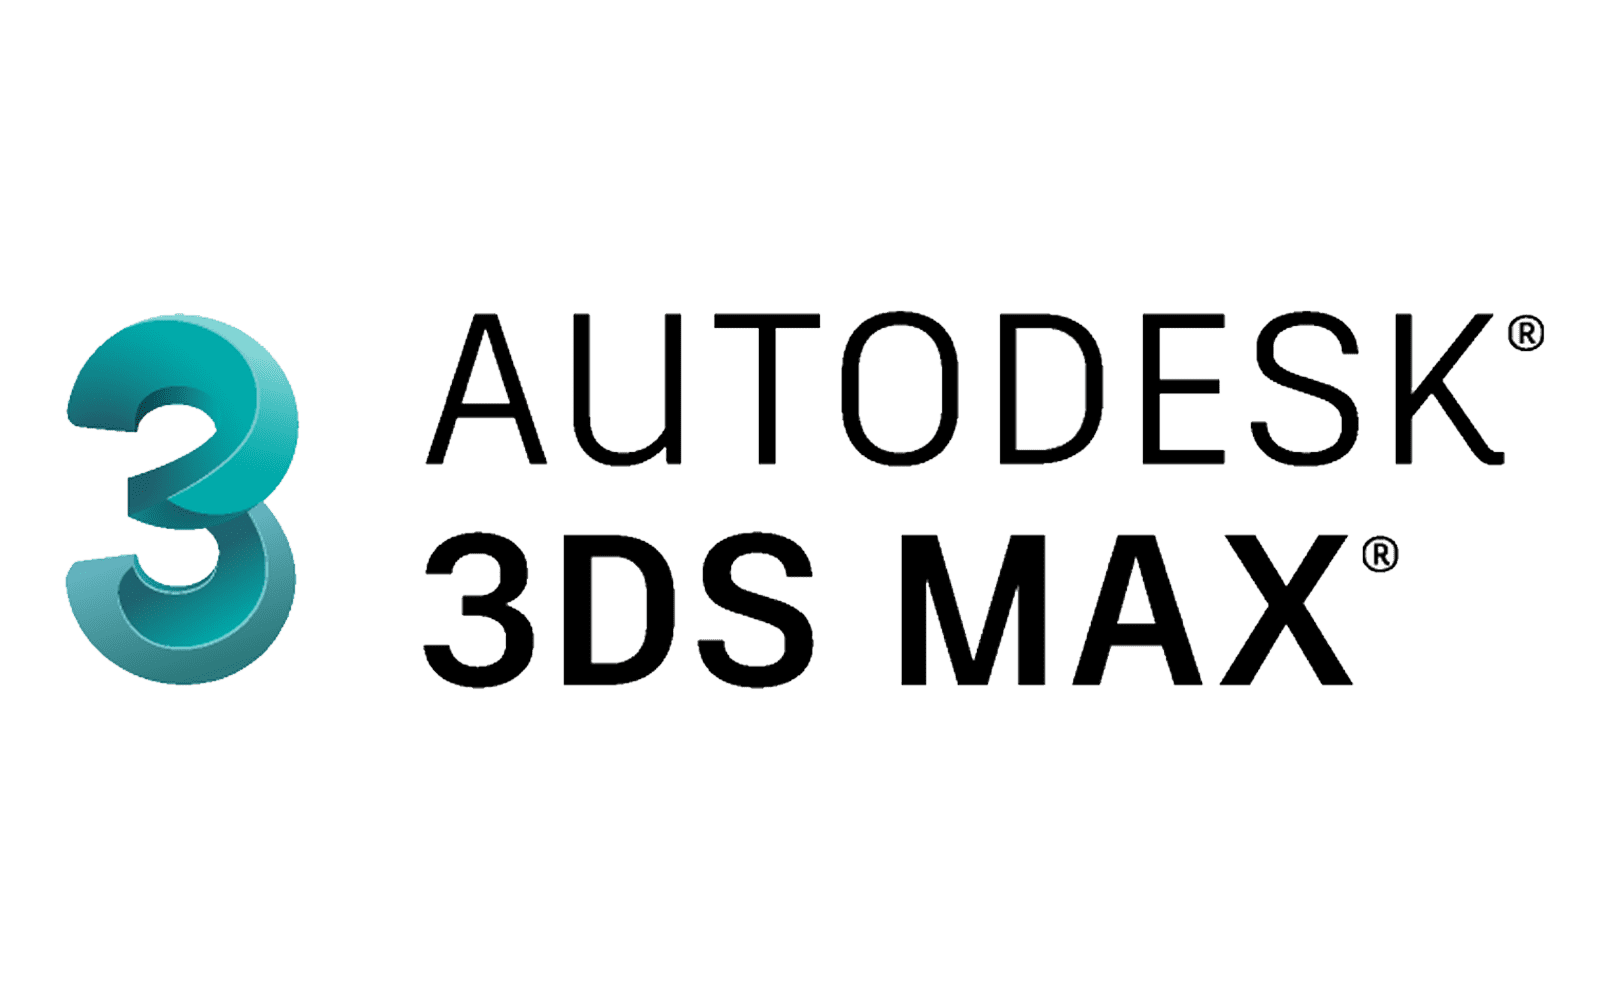 3ds Max logo and symbol, meaning, history, PNG